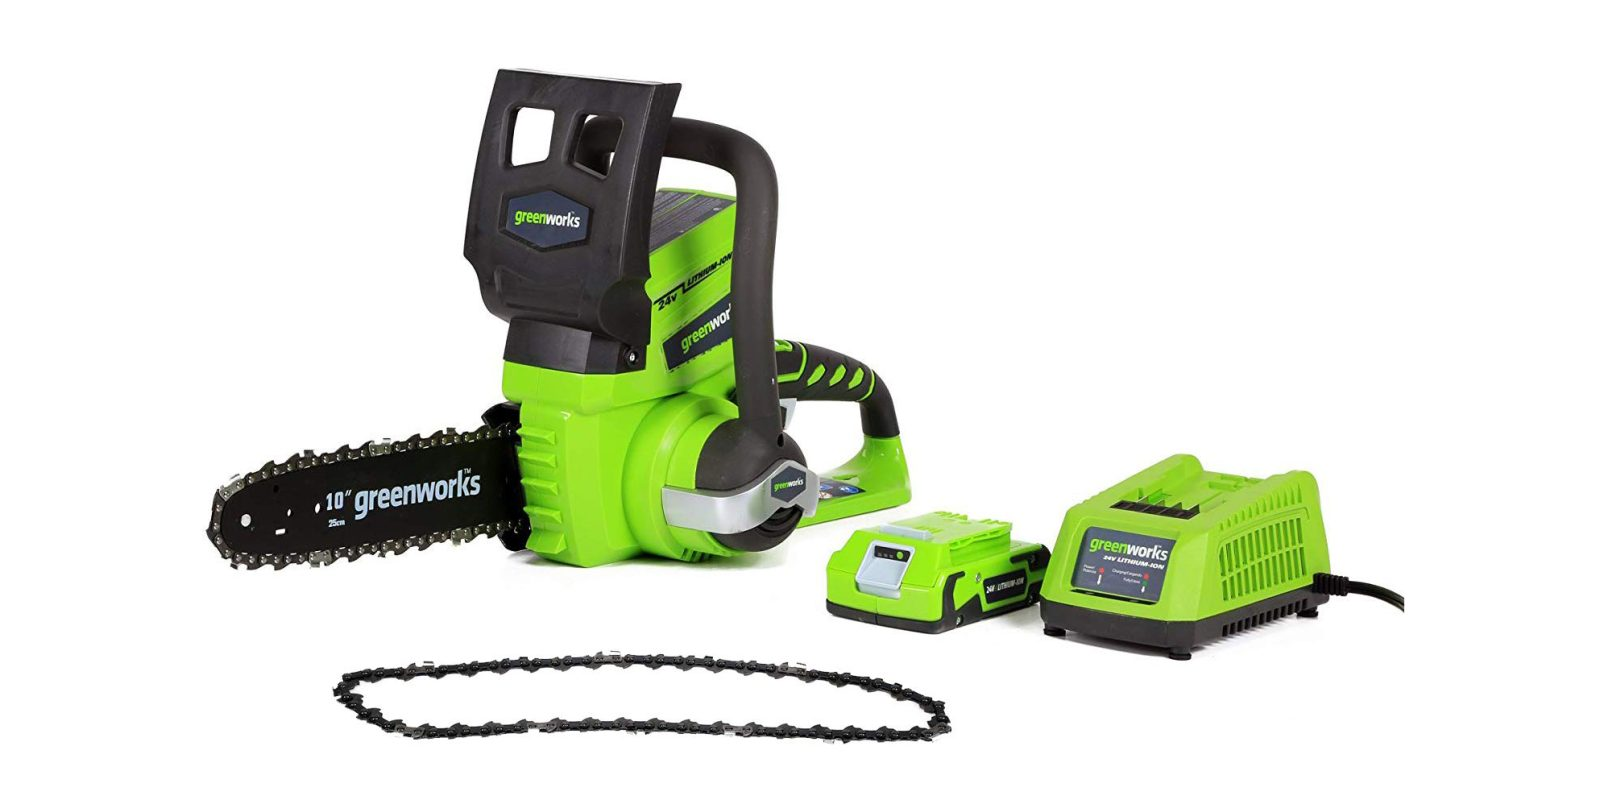 Greenworks 10-inch 24V Cordless Electric Chainsaw $50, more in today's Green Deals